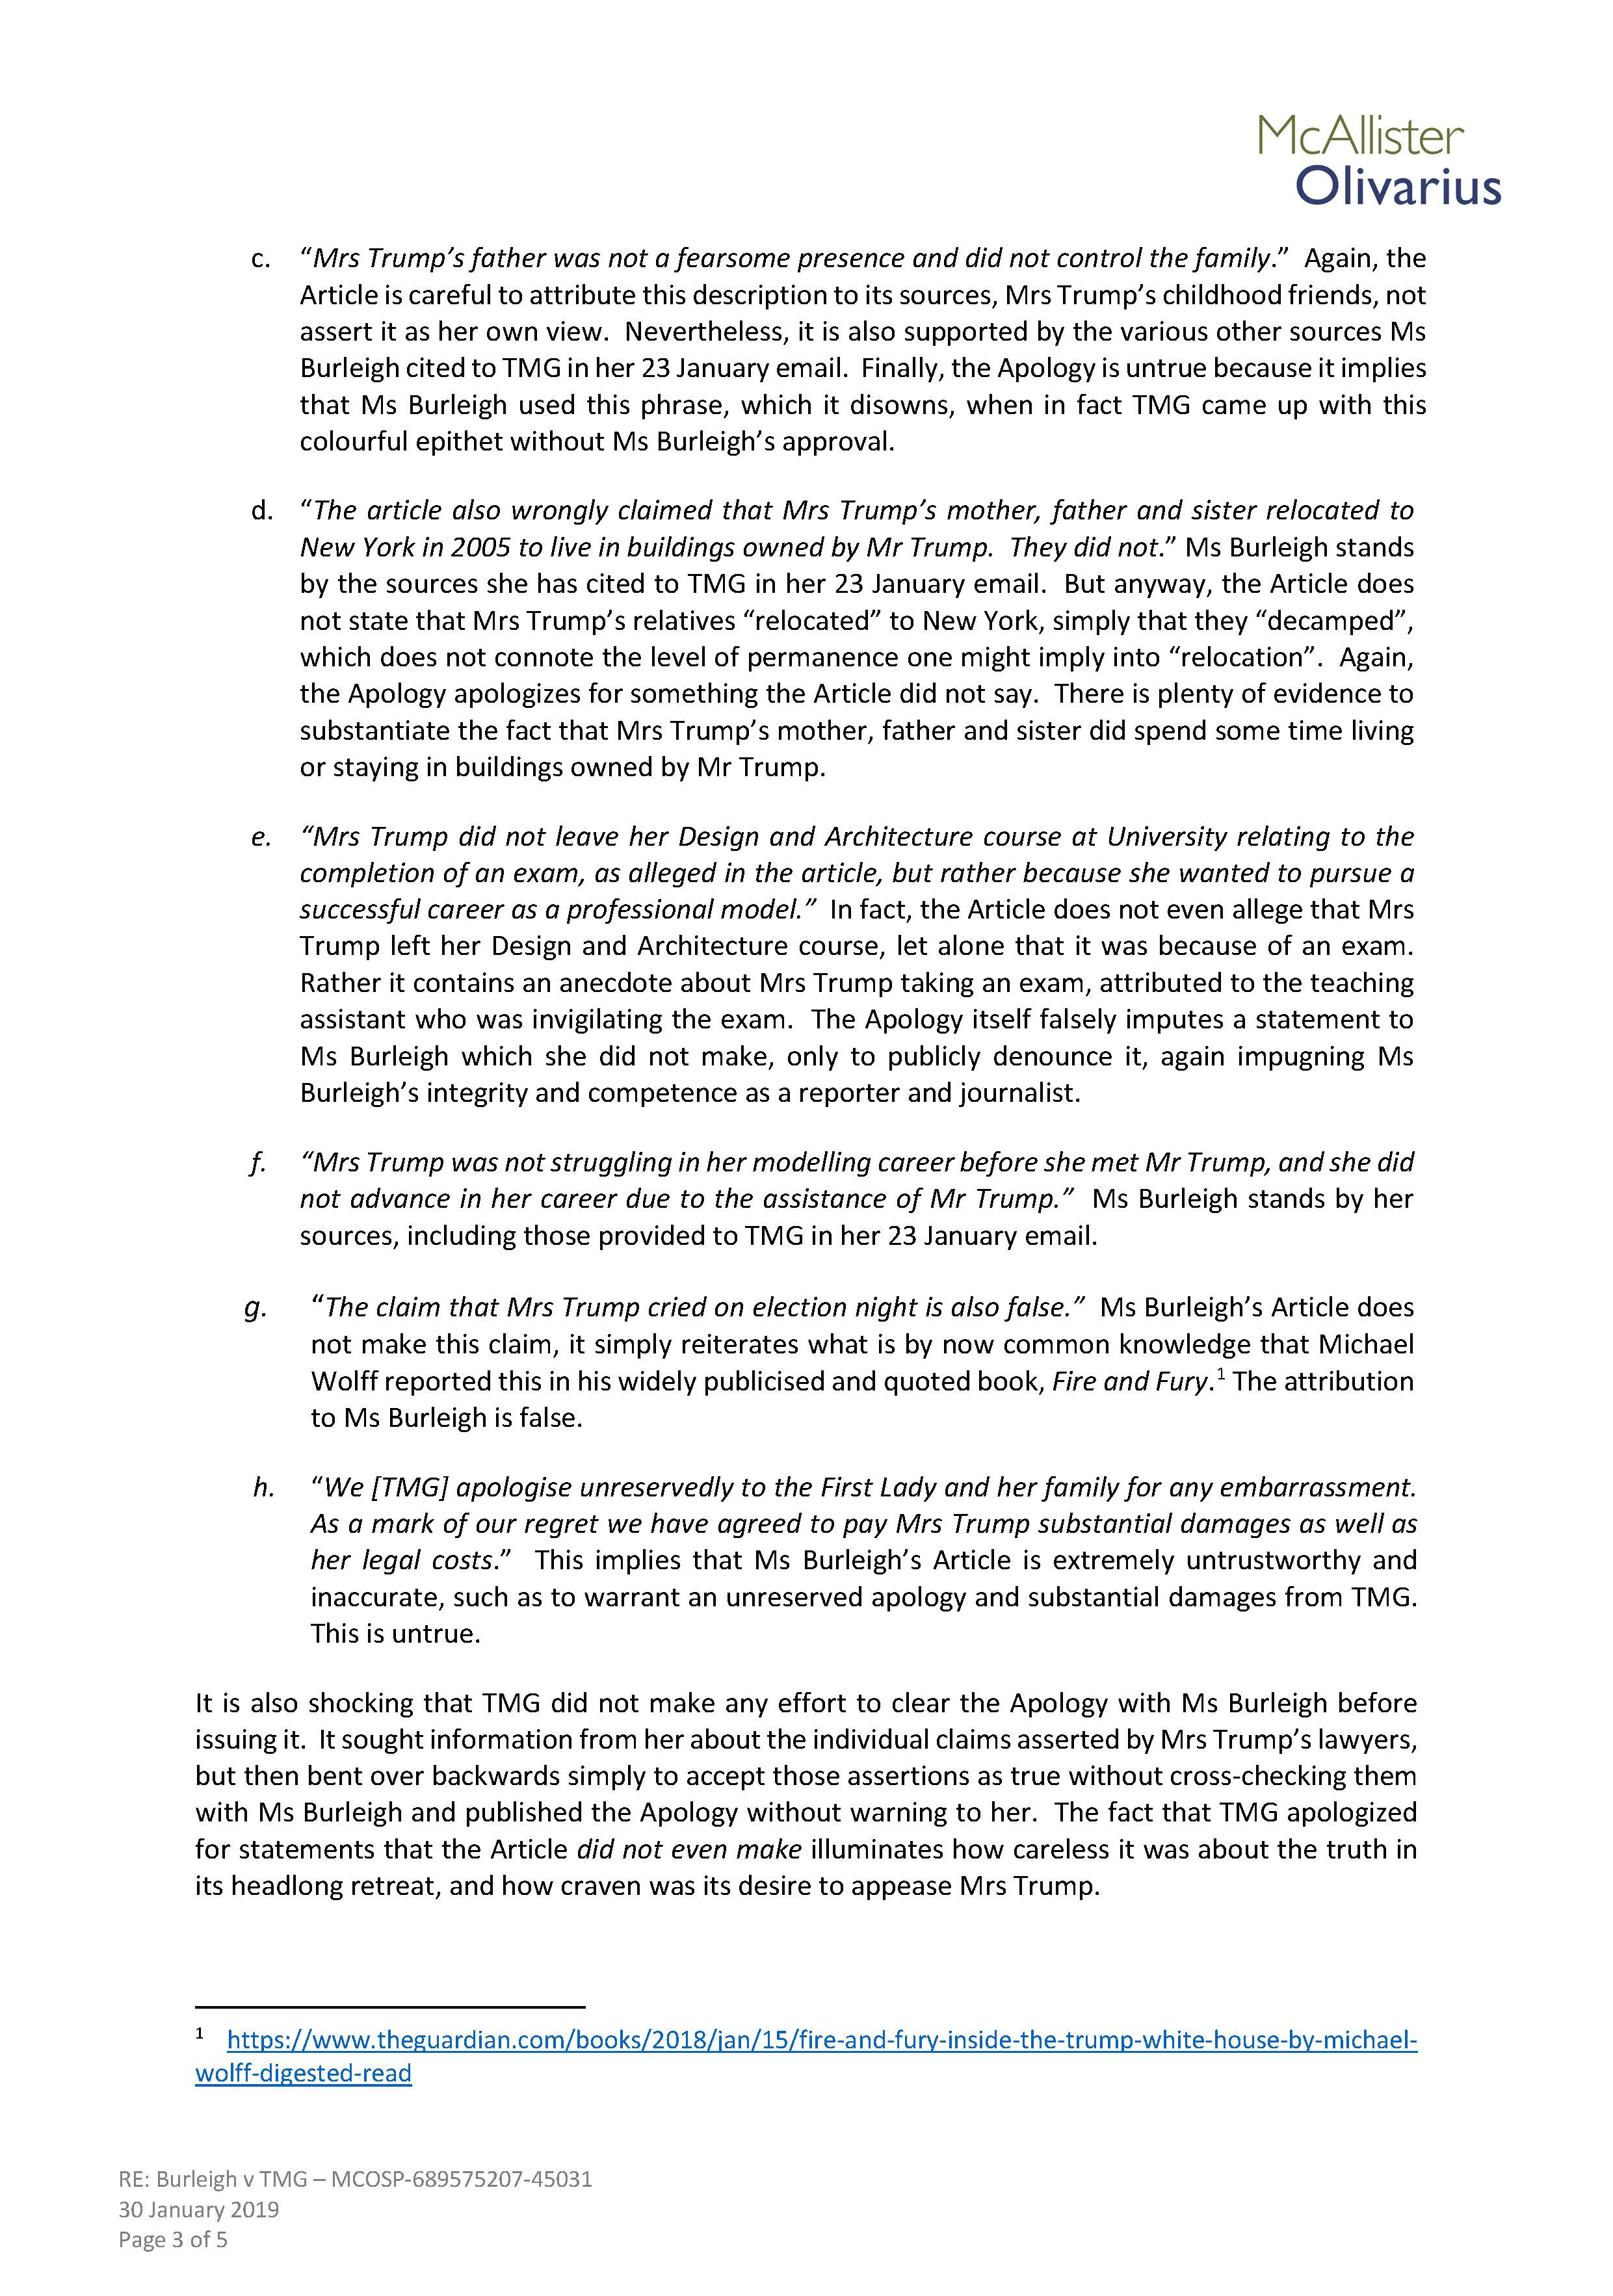 2019-01-30 - Letter of Claim - McO to TMG_Page_3.jpg